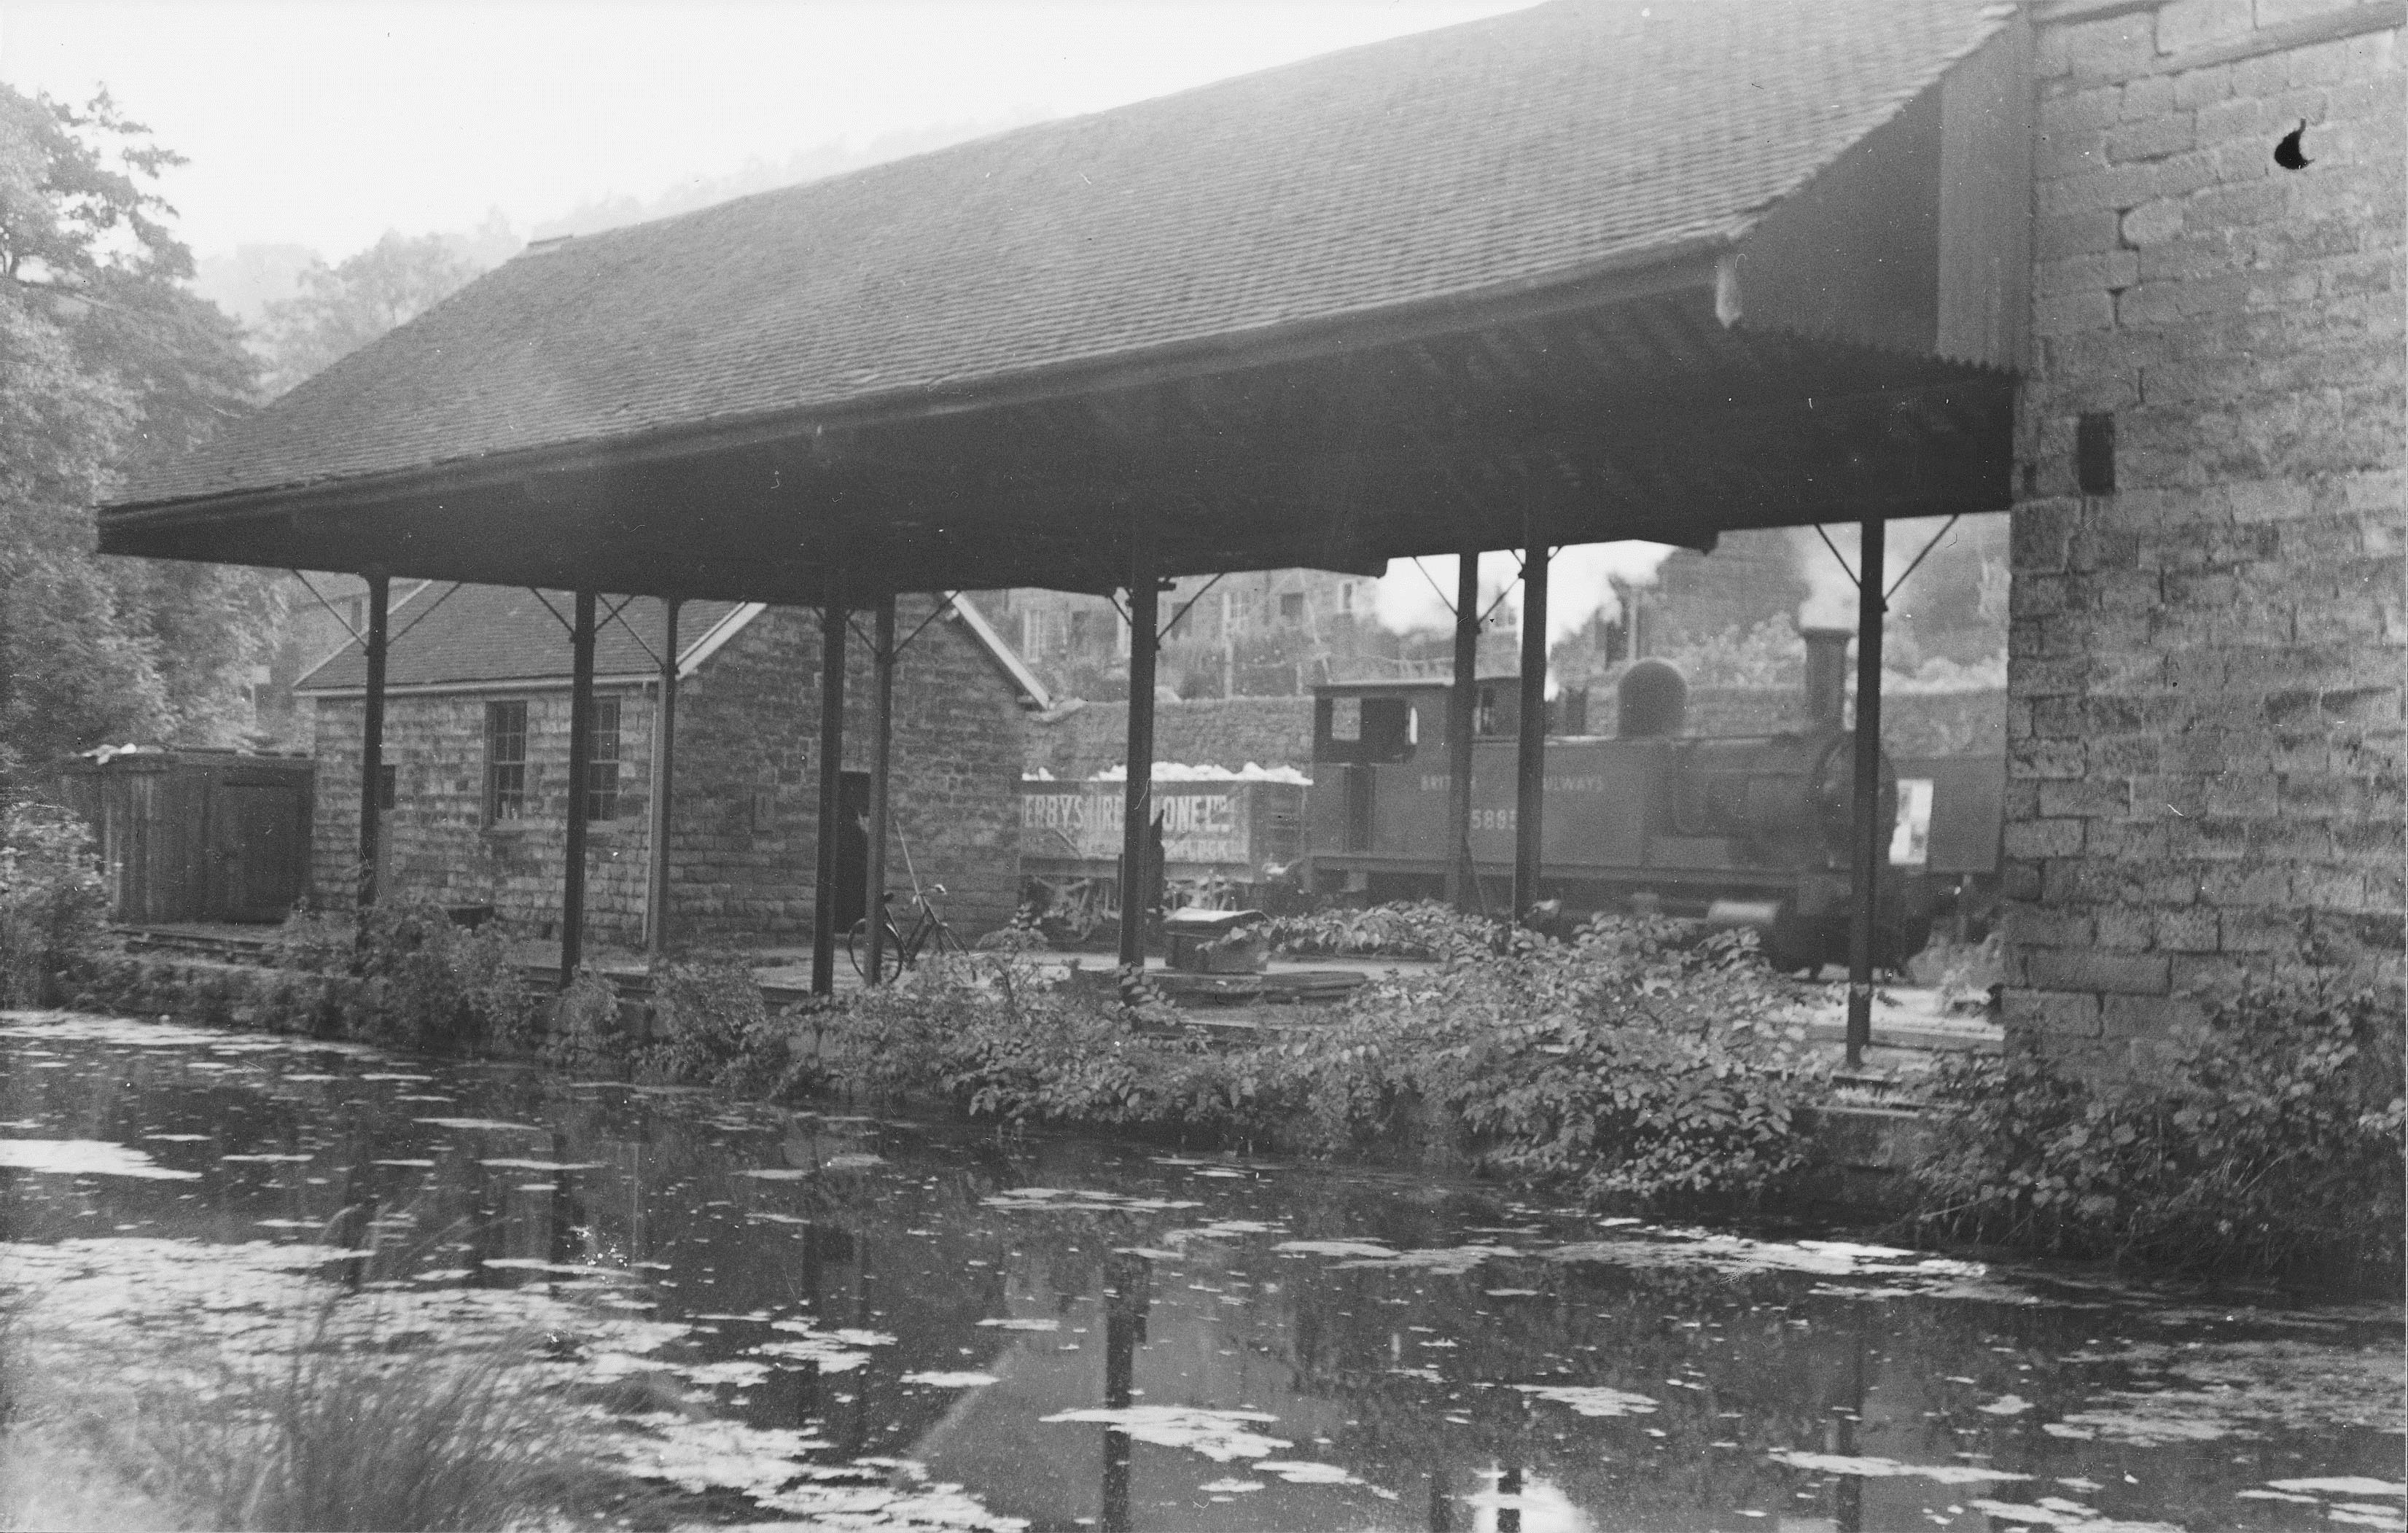 Taken on 10th October 1951, an engine shunts limestone wagons behind the Transhipment Warehouse with the Cromford Canal in the foreground.